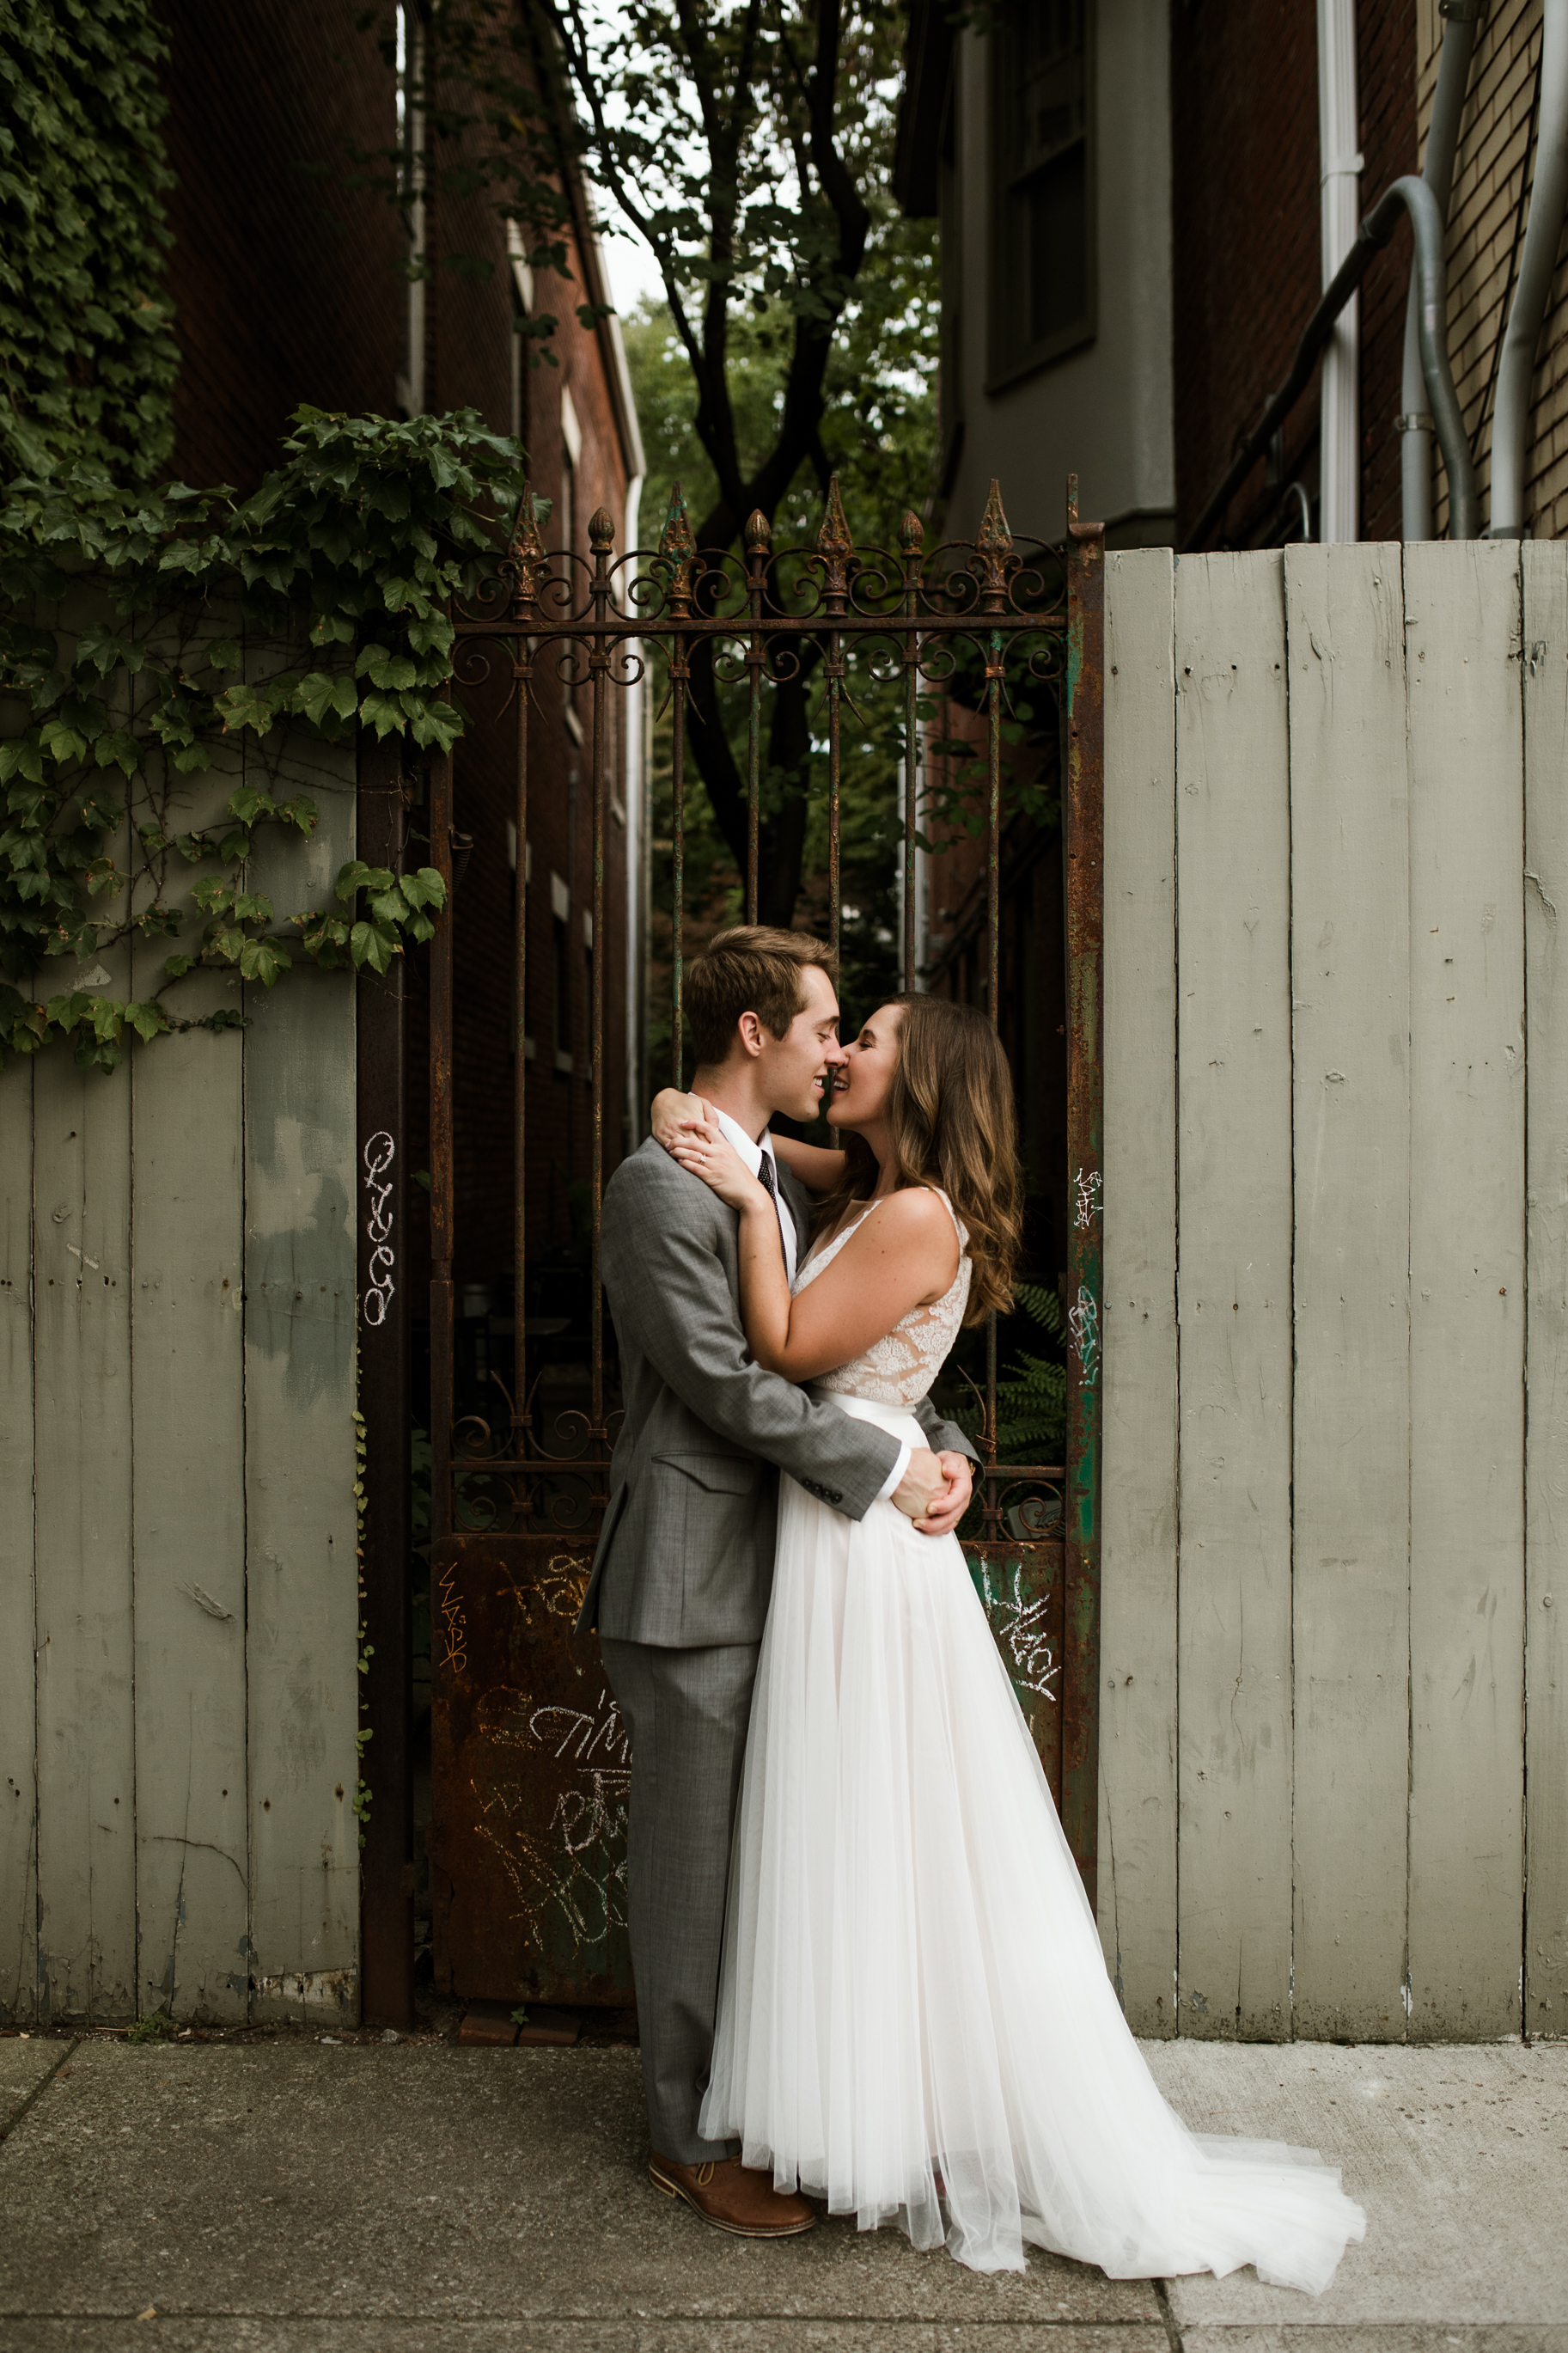 Amanda & Dave Anniversary 2018 Crystal Ludwick Photo Louisville Wedding Photographer Kentucky Wedding Photographer (32 of 43).jpg